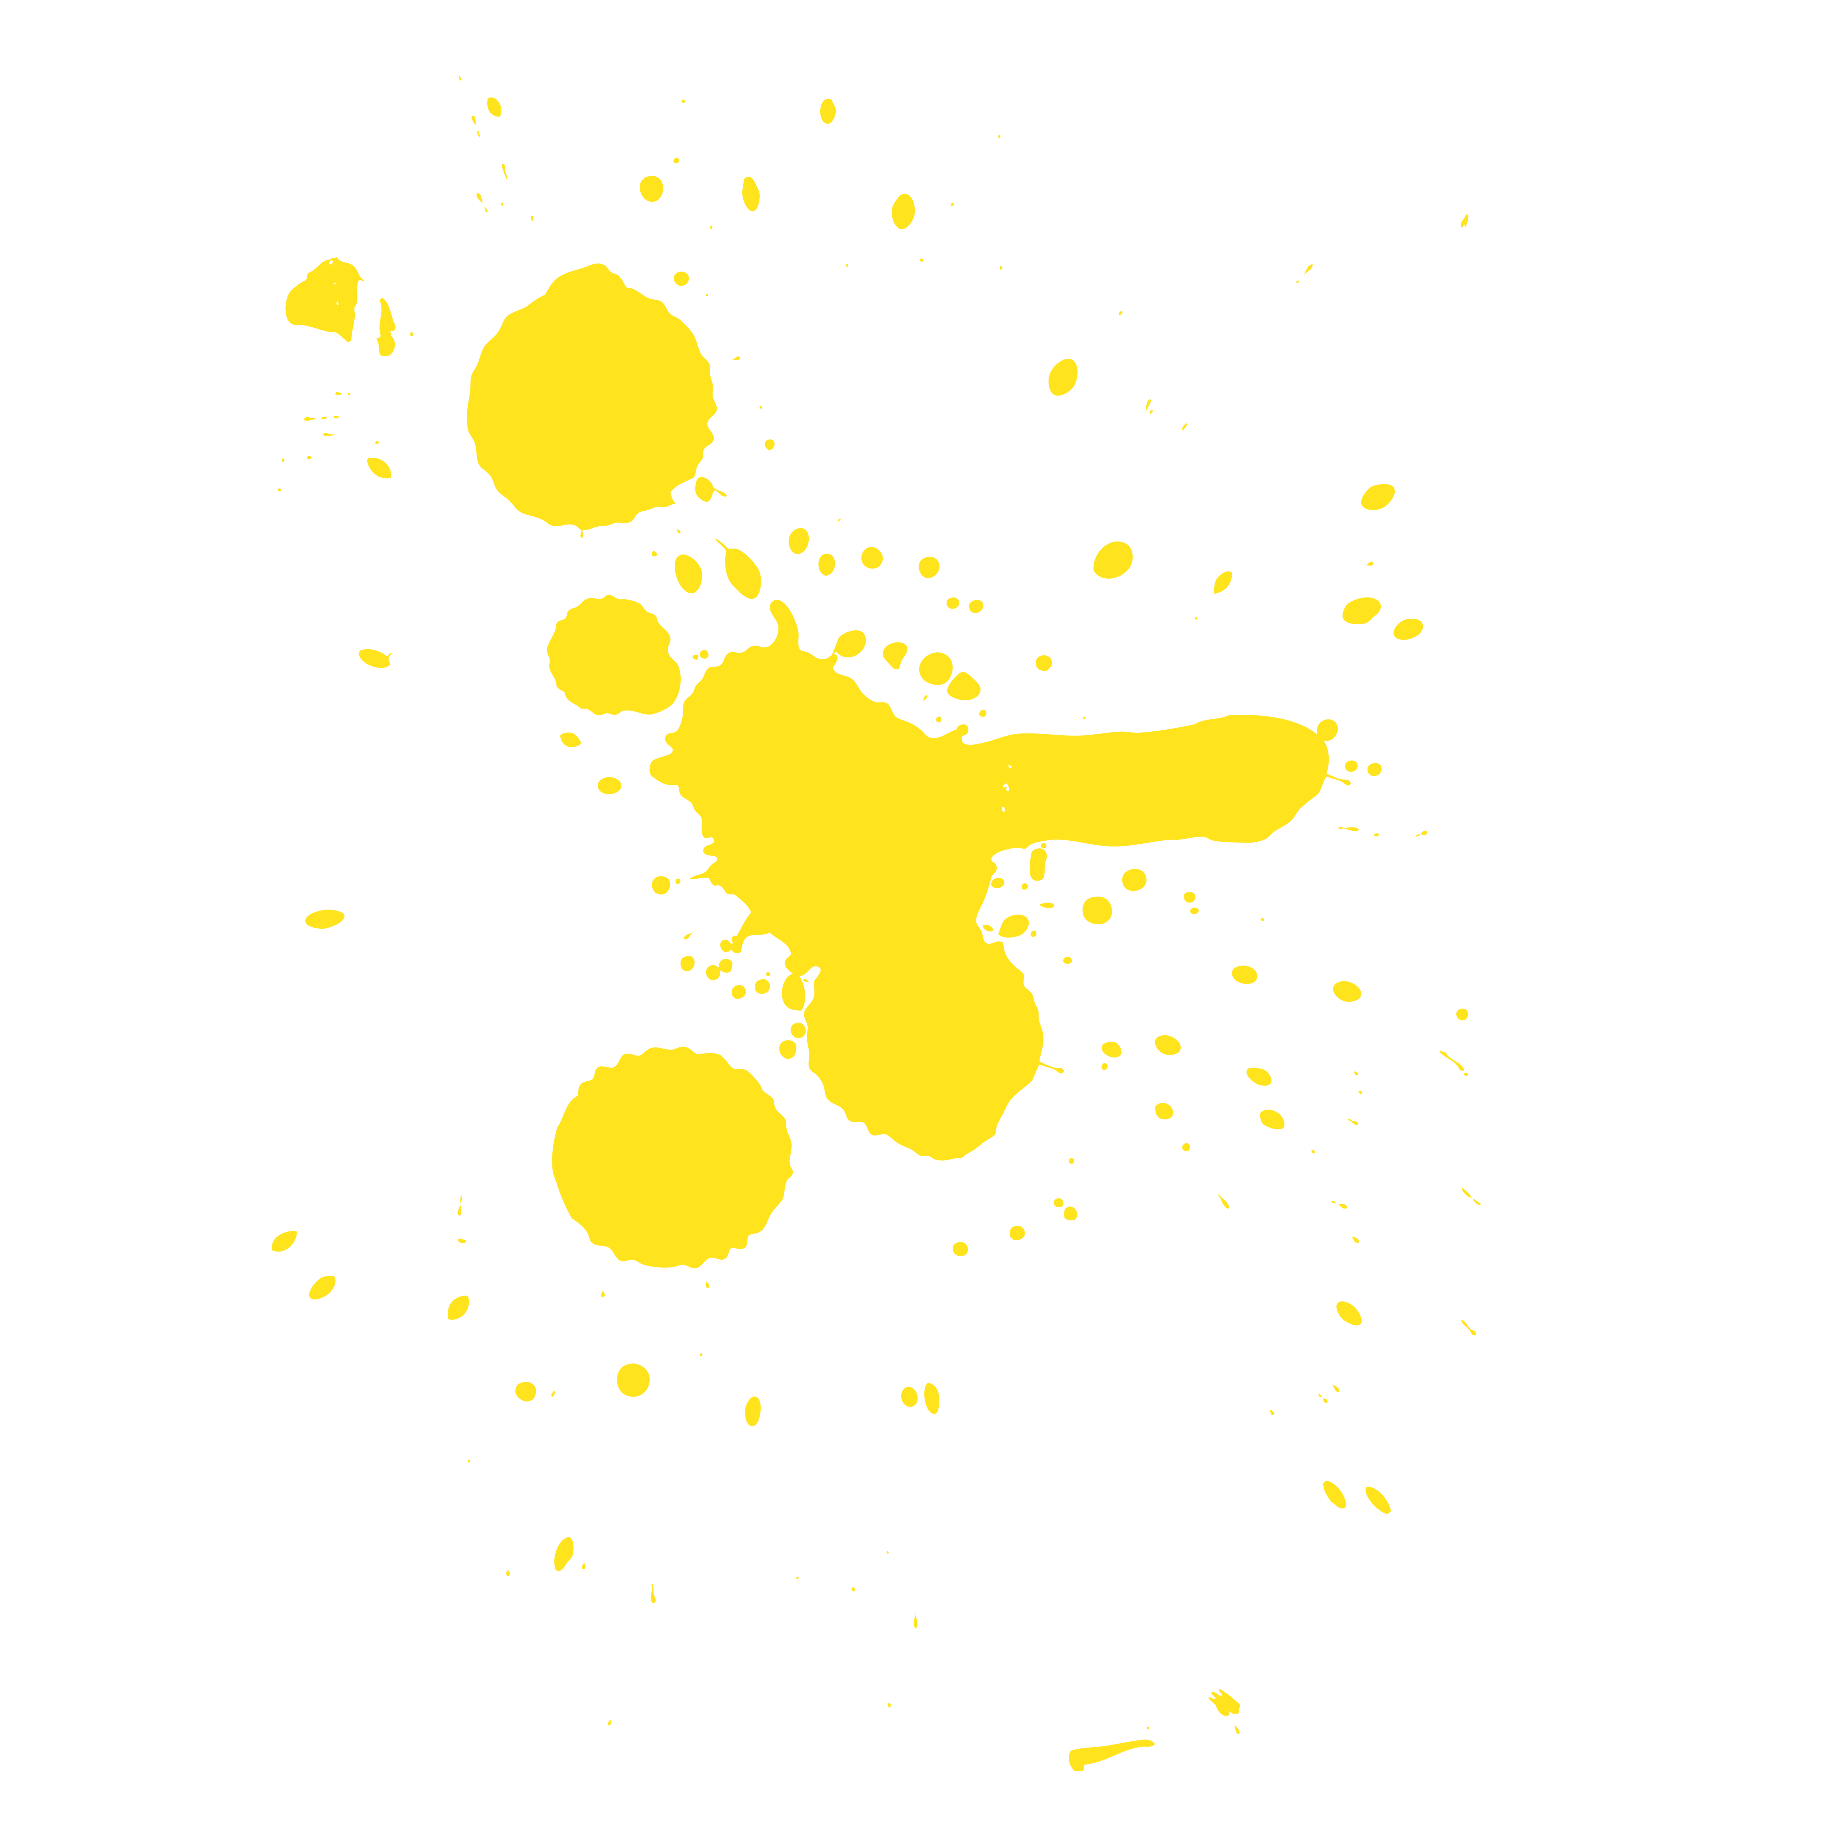 Yellow paint splatter png. Big saturday creativity and